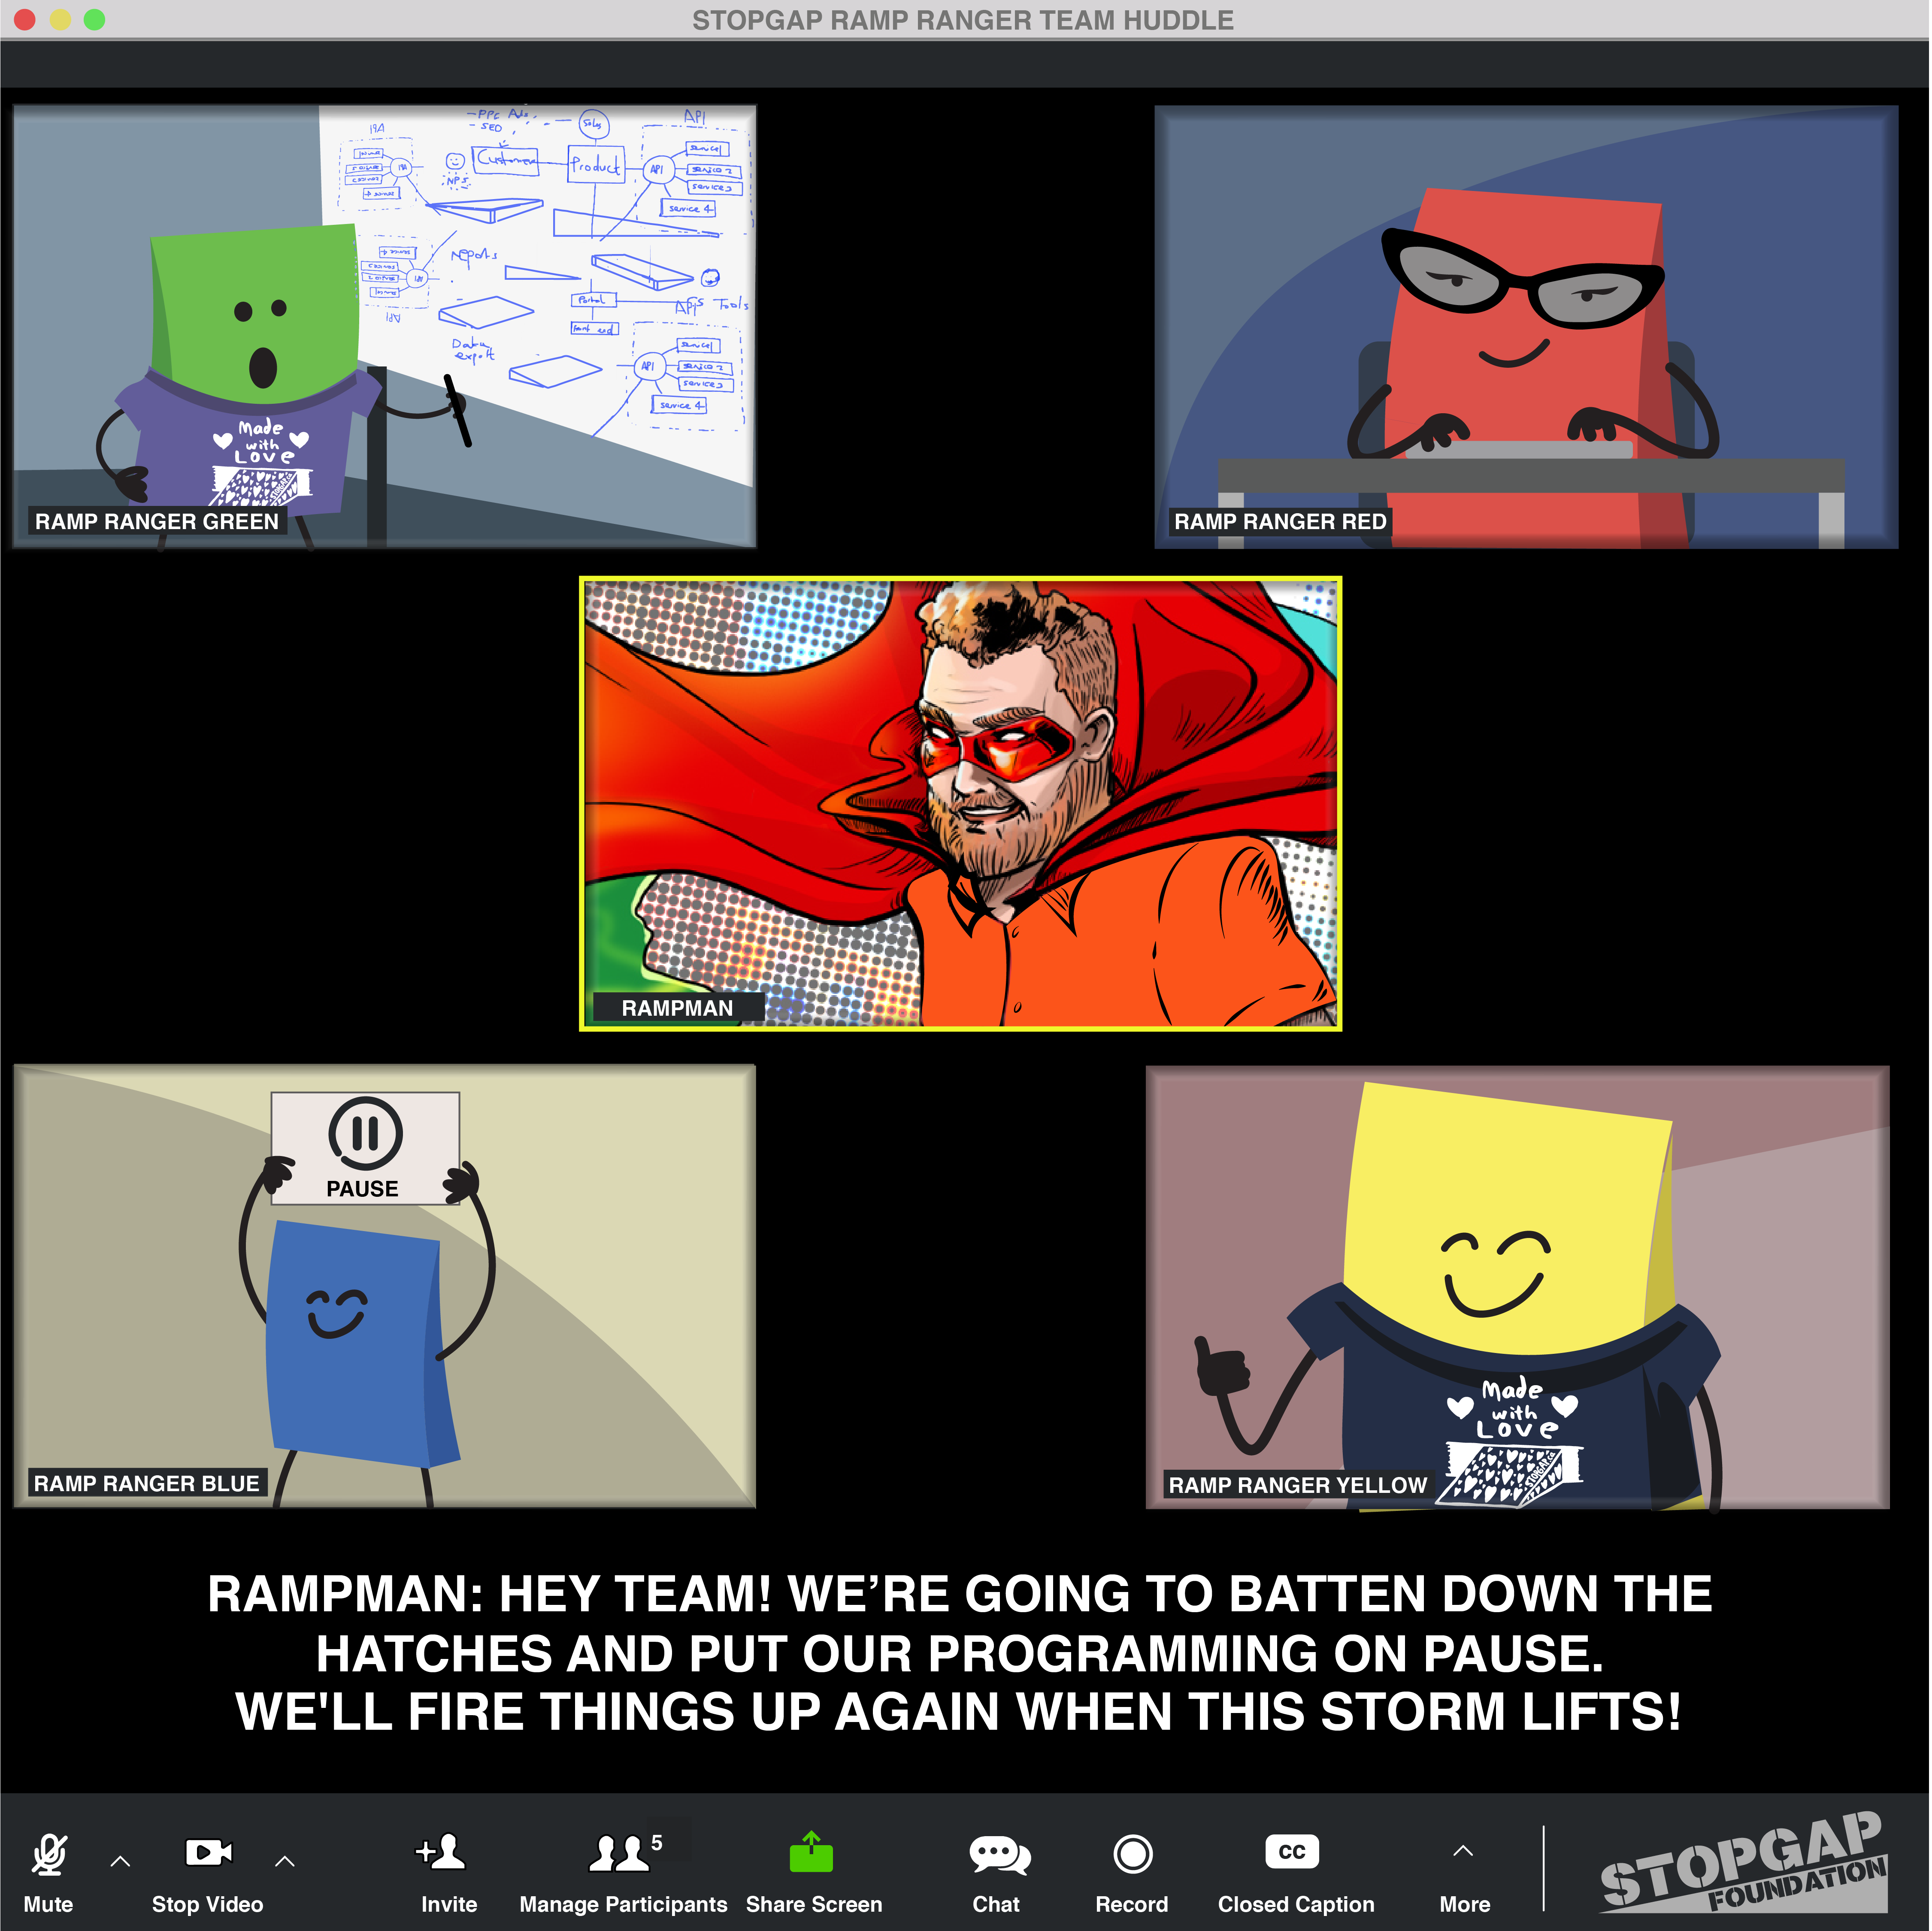 A graphic illustration of a video call with Rampman and 4 ramp rangers. The text reads: RAMPMAN: HEY TEAM! WE'RE GOING TO BATTEN DOWN THE HATCHES AND PUT OUR PROGRAMMING ON PAUSE. WE'LL FIRE THINGS UP AGAIN WHEN THIS STORM LIFTS!